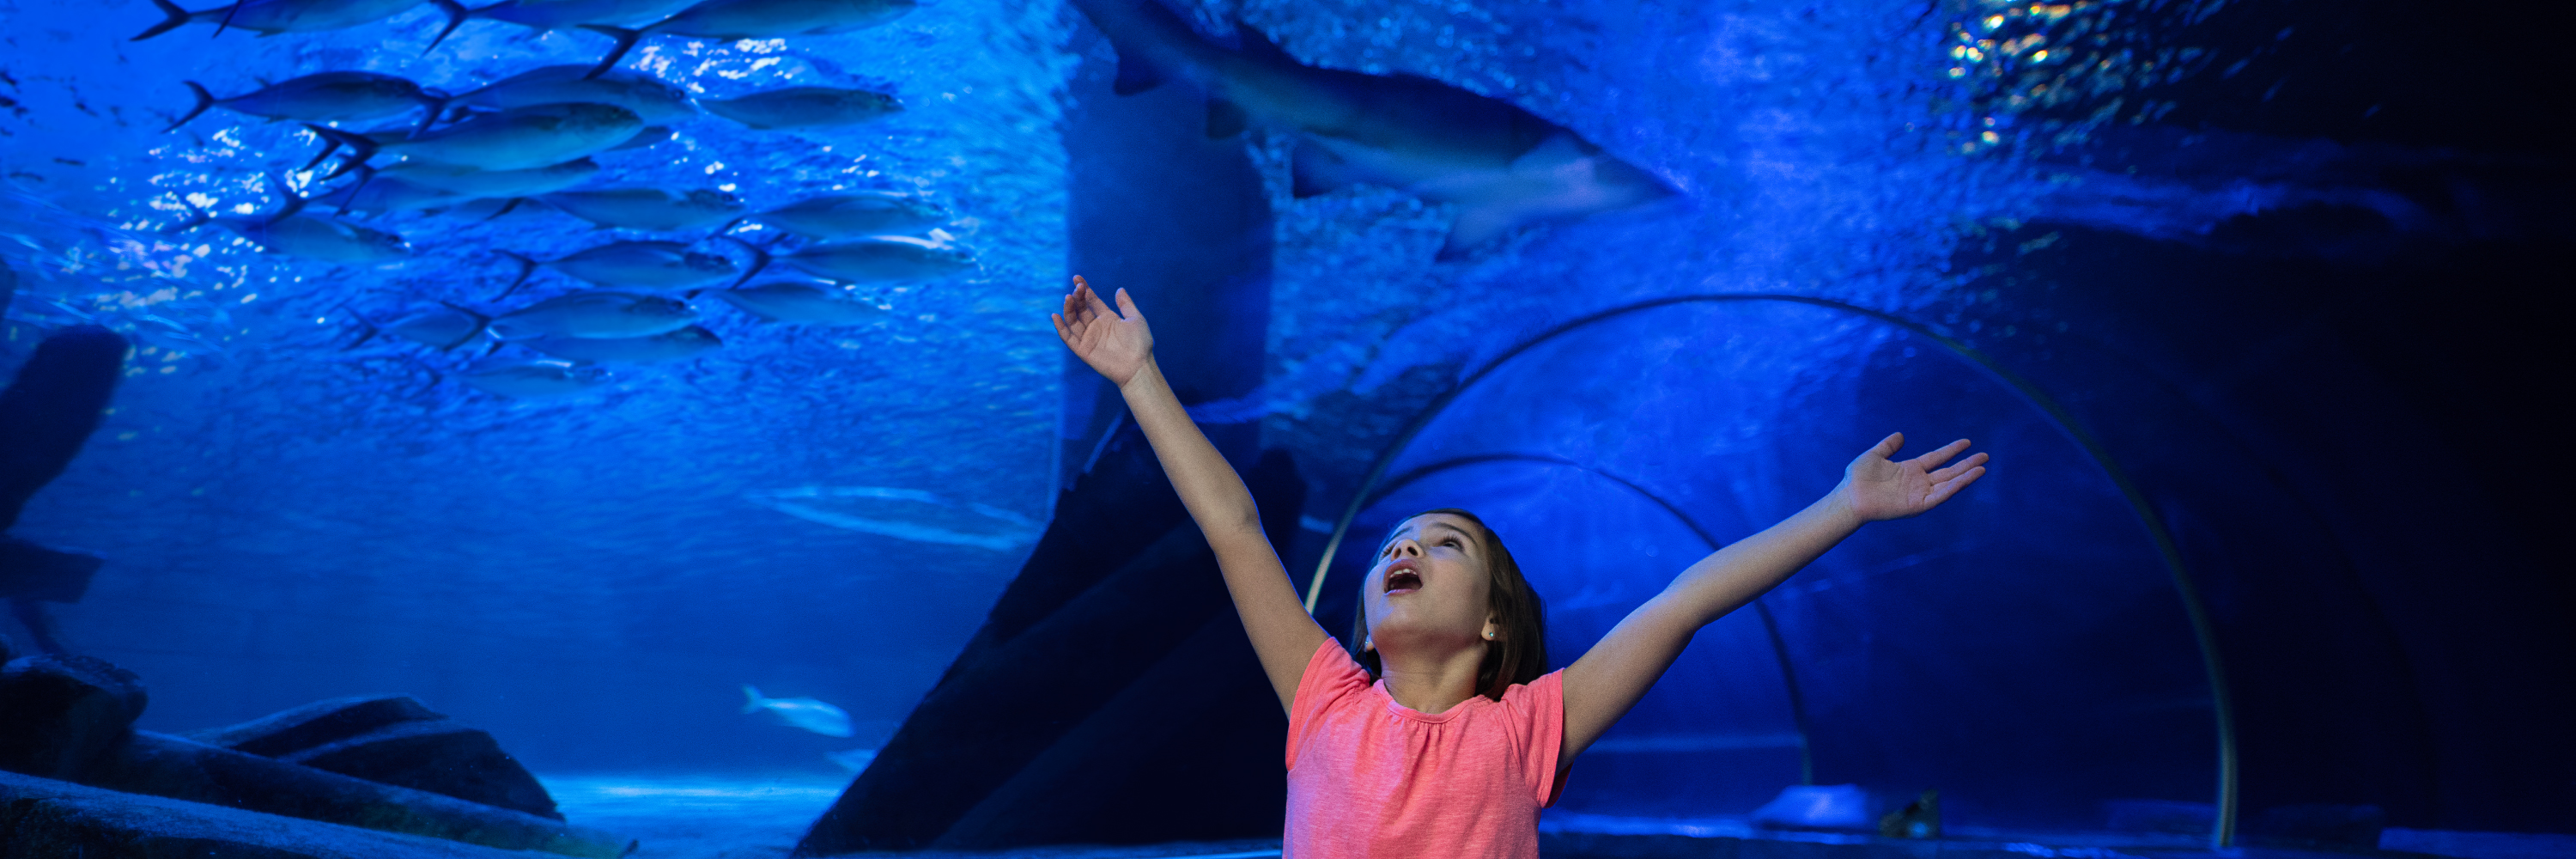 Girl In Tunnel | SEA LIFE Aquarium